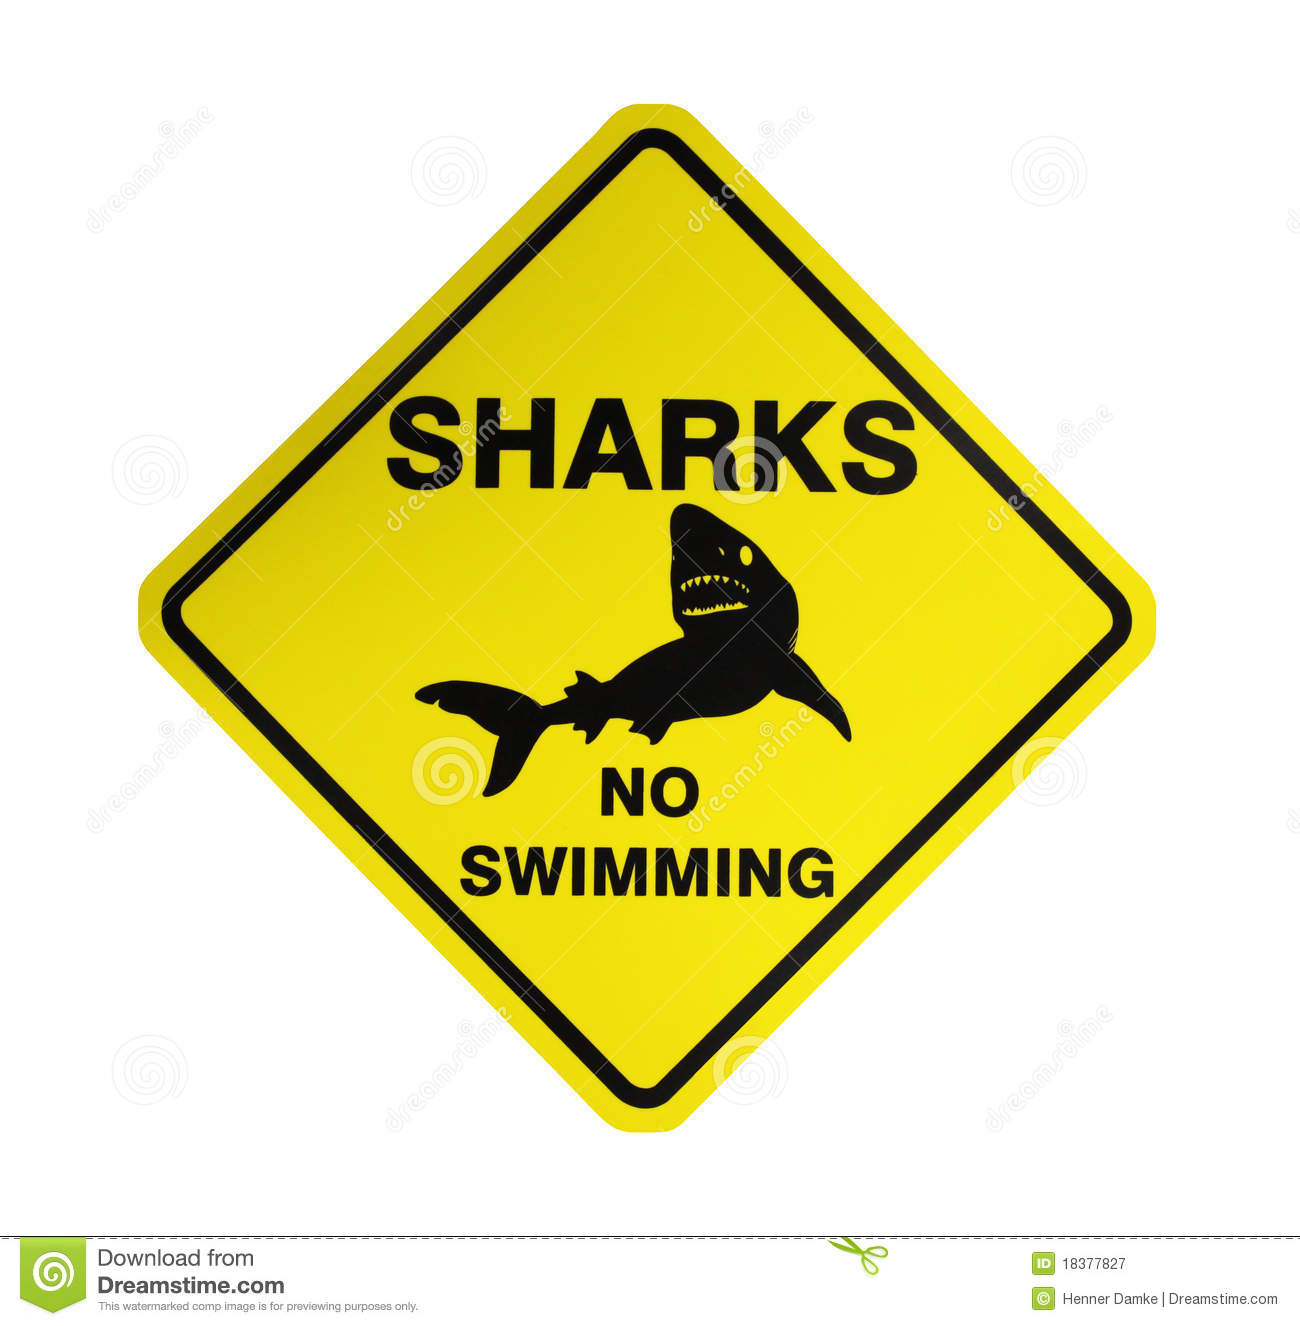 Sharks - Warning Sign Royalty Free Stock Photography - Image: 18377827